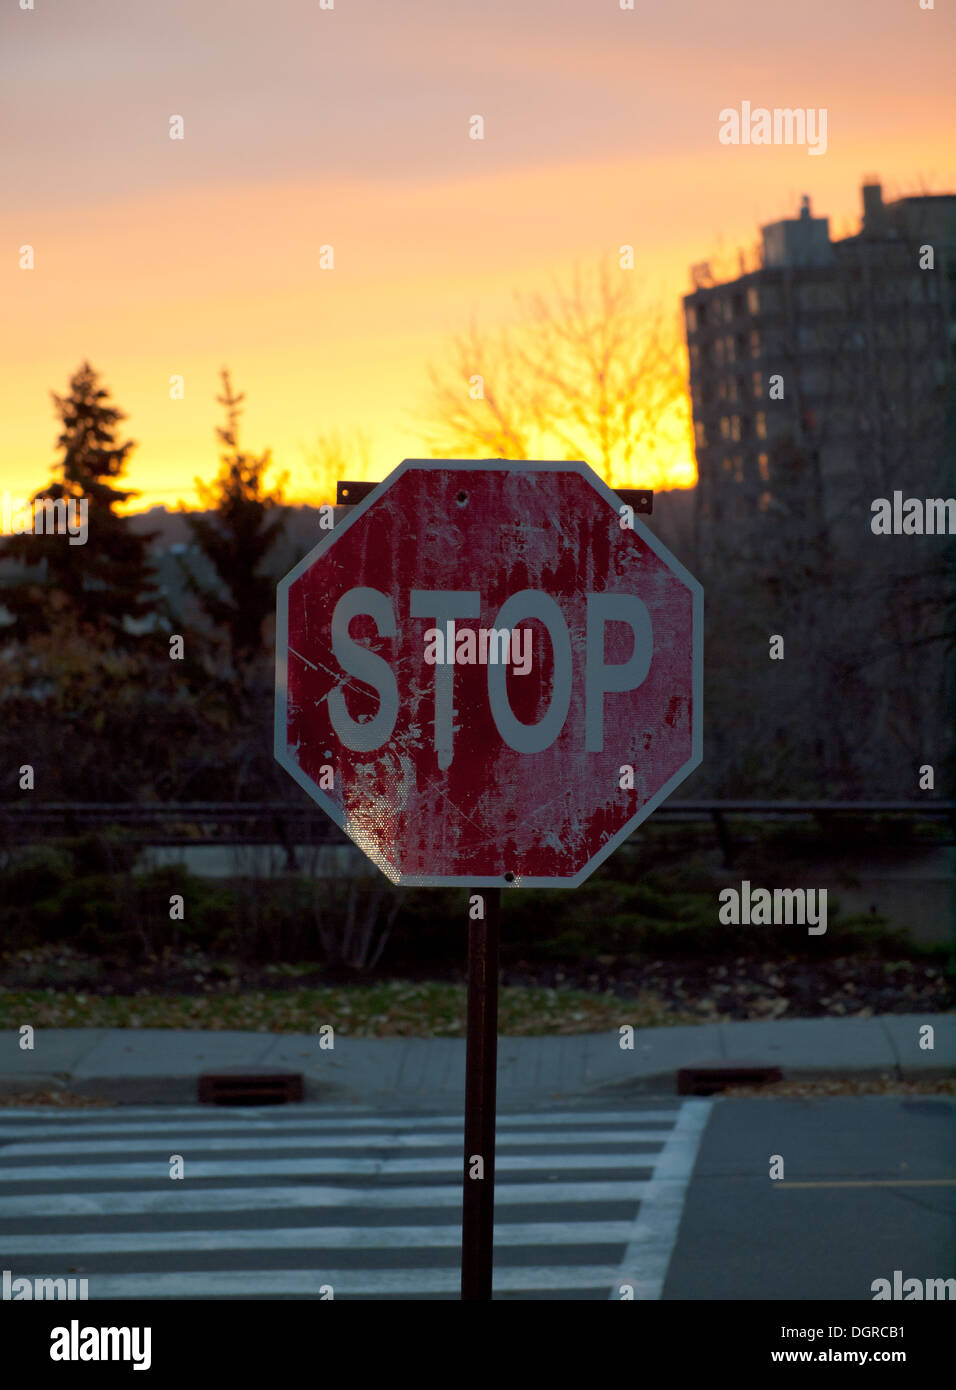 An old, weathered stop sign at sunrise in Edmonton, Alberta, Canada. - Stock Image